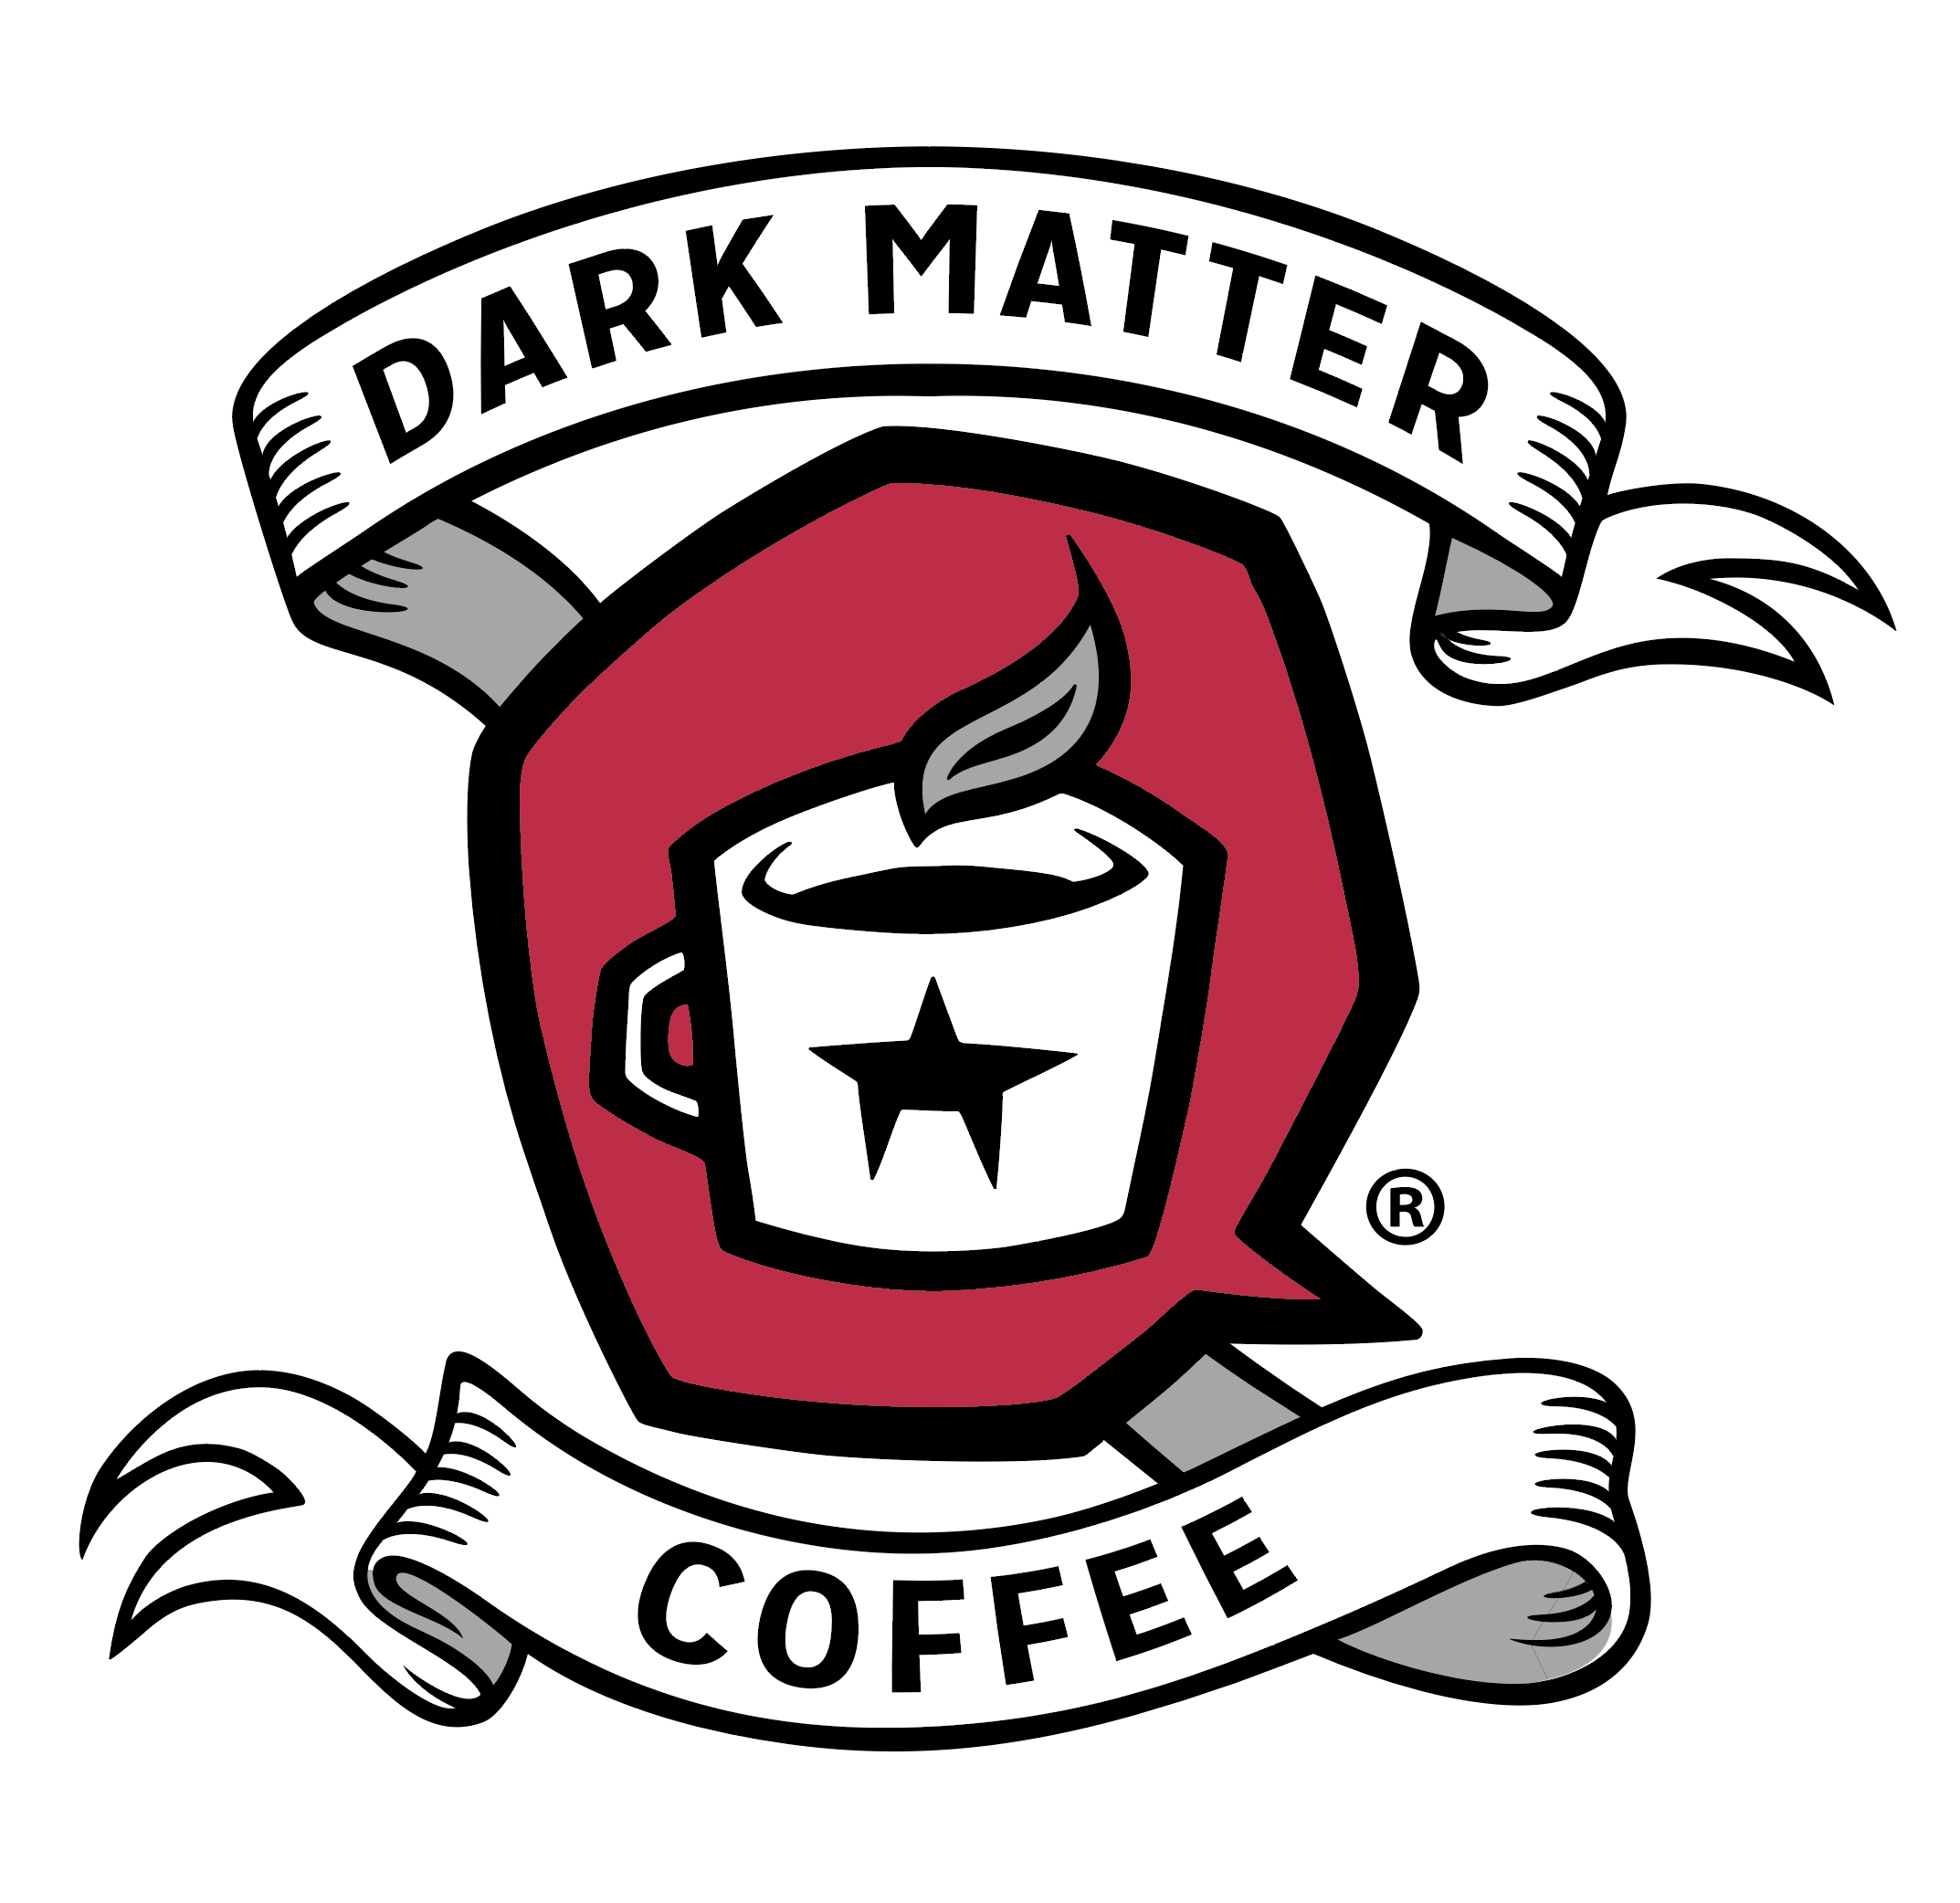 Proudly serving Dark Matter Coffee - And other natural and unique drink choices